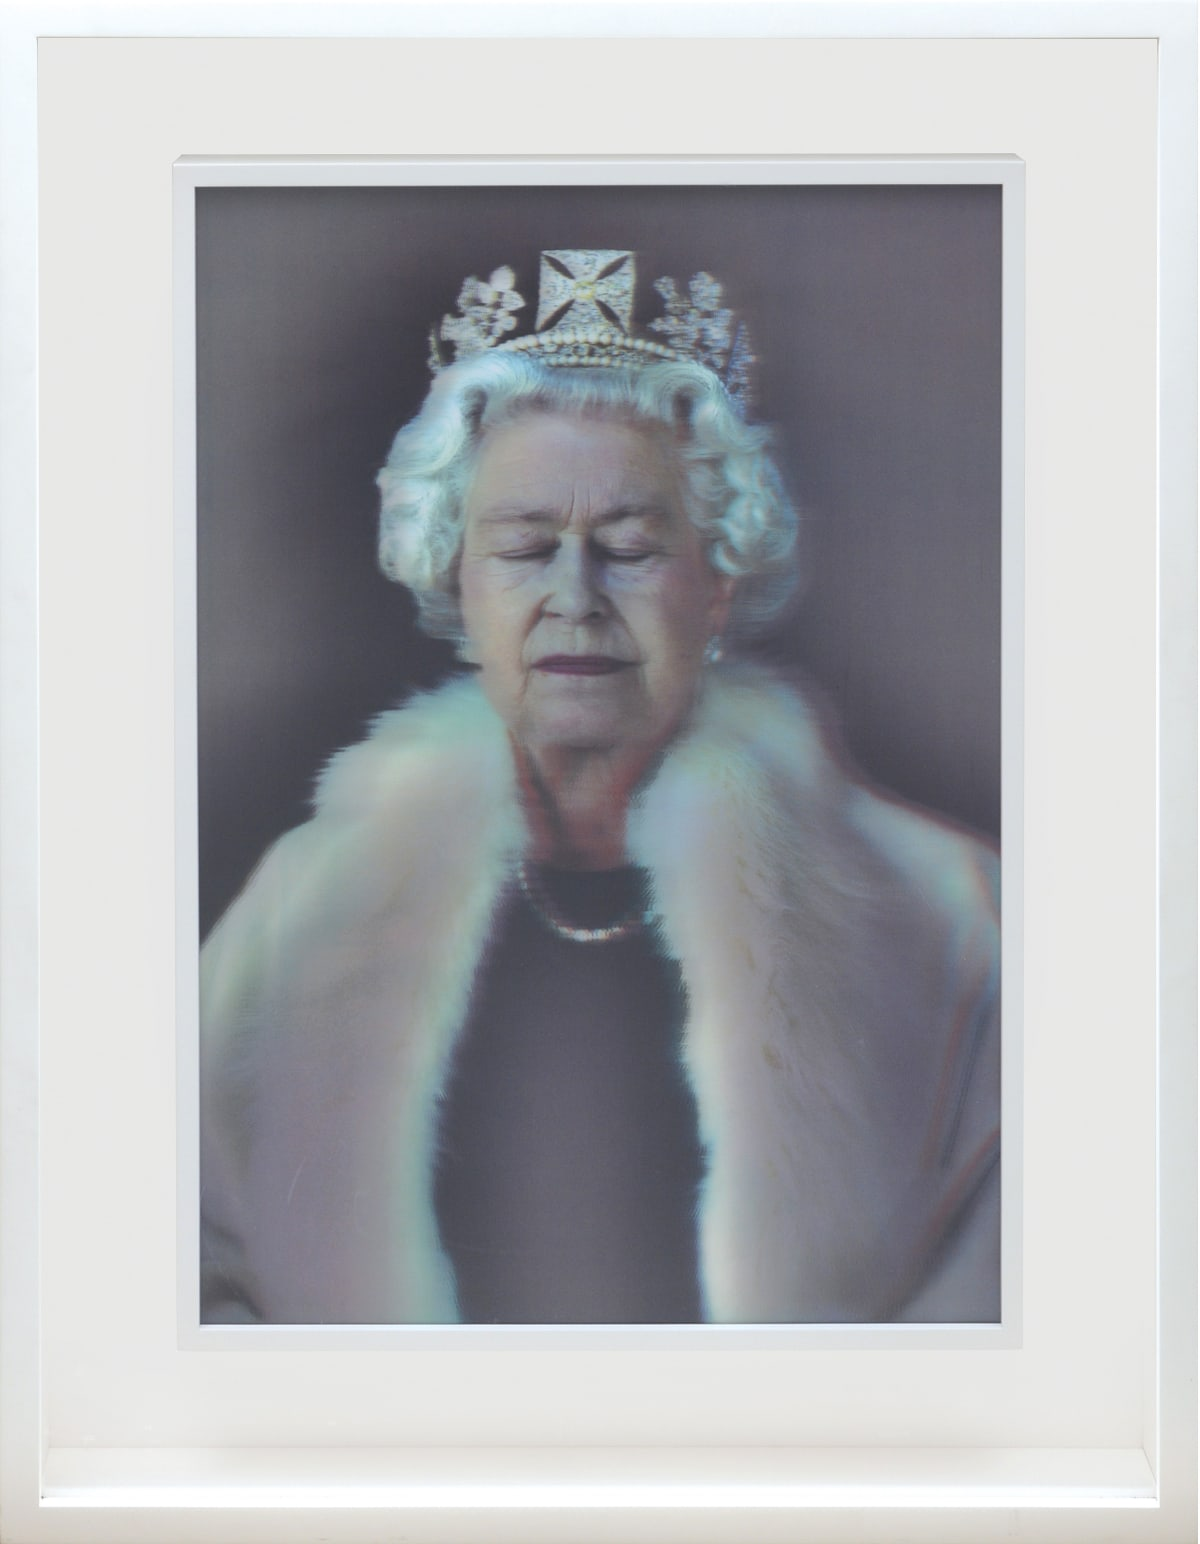 Chris Levine, Lightness of Being [Queen Elizabeth II], 2009 3D Lenticular print 68 x 48.6 cm To create the three-dimensional portrait, Chris Levine took over 10,000 images and 3D data-sets of The Queen during two sittings at Buckingham Palace. The work shows The Queen wearing the Diamond Diadem created for George IV and worn by Her Majesty for the procession to her Coronation in 1953.